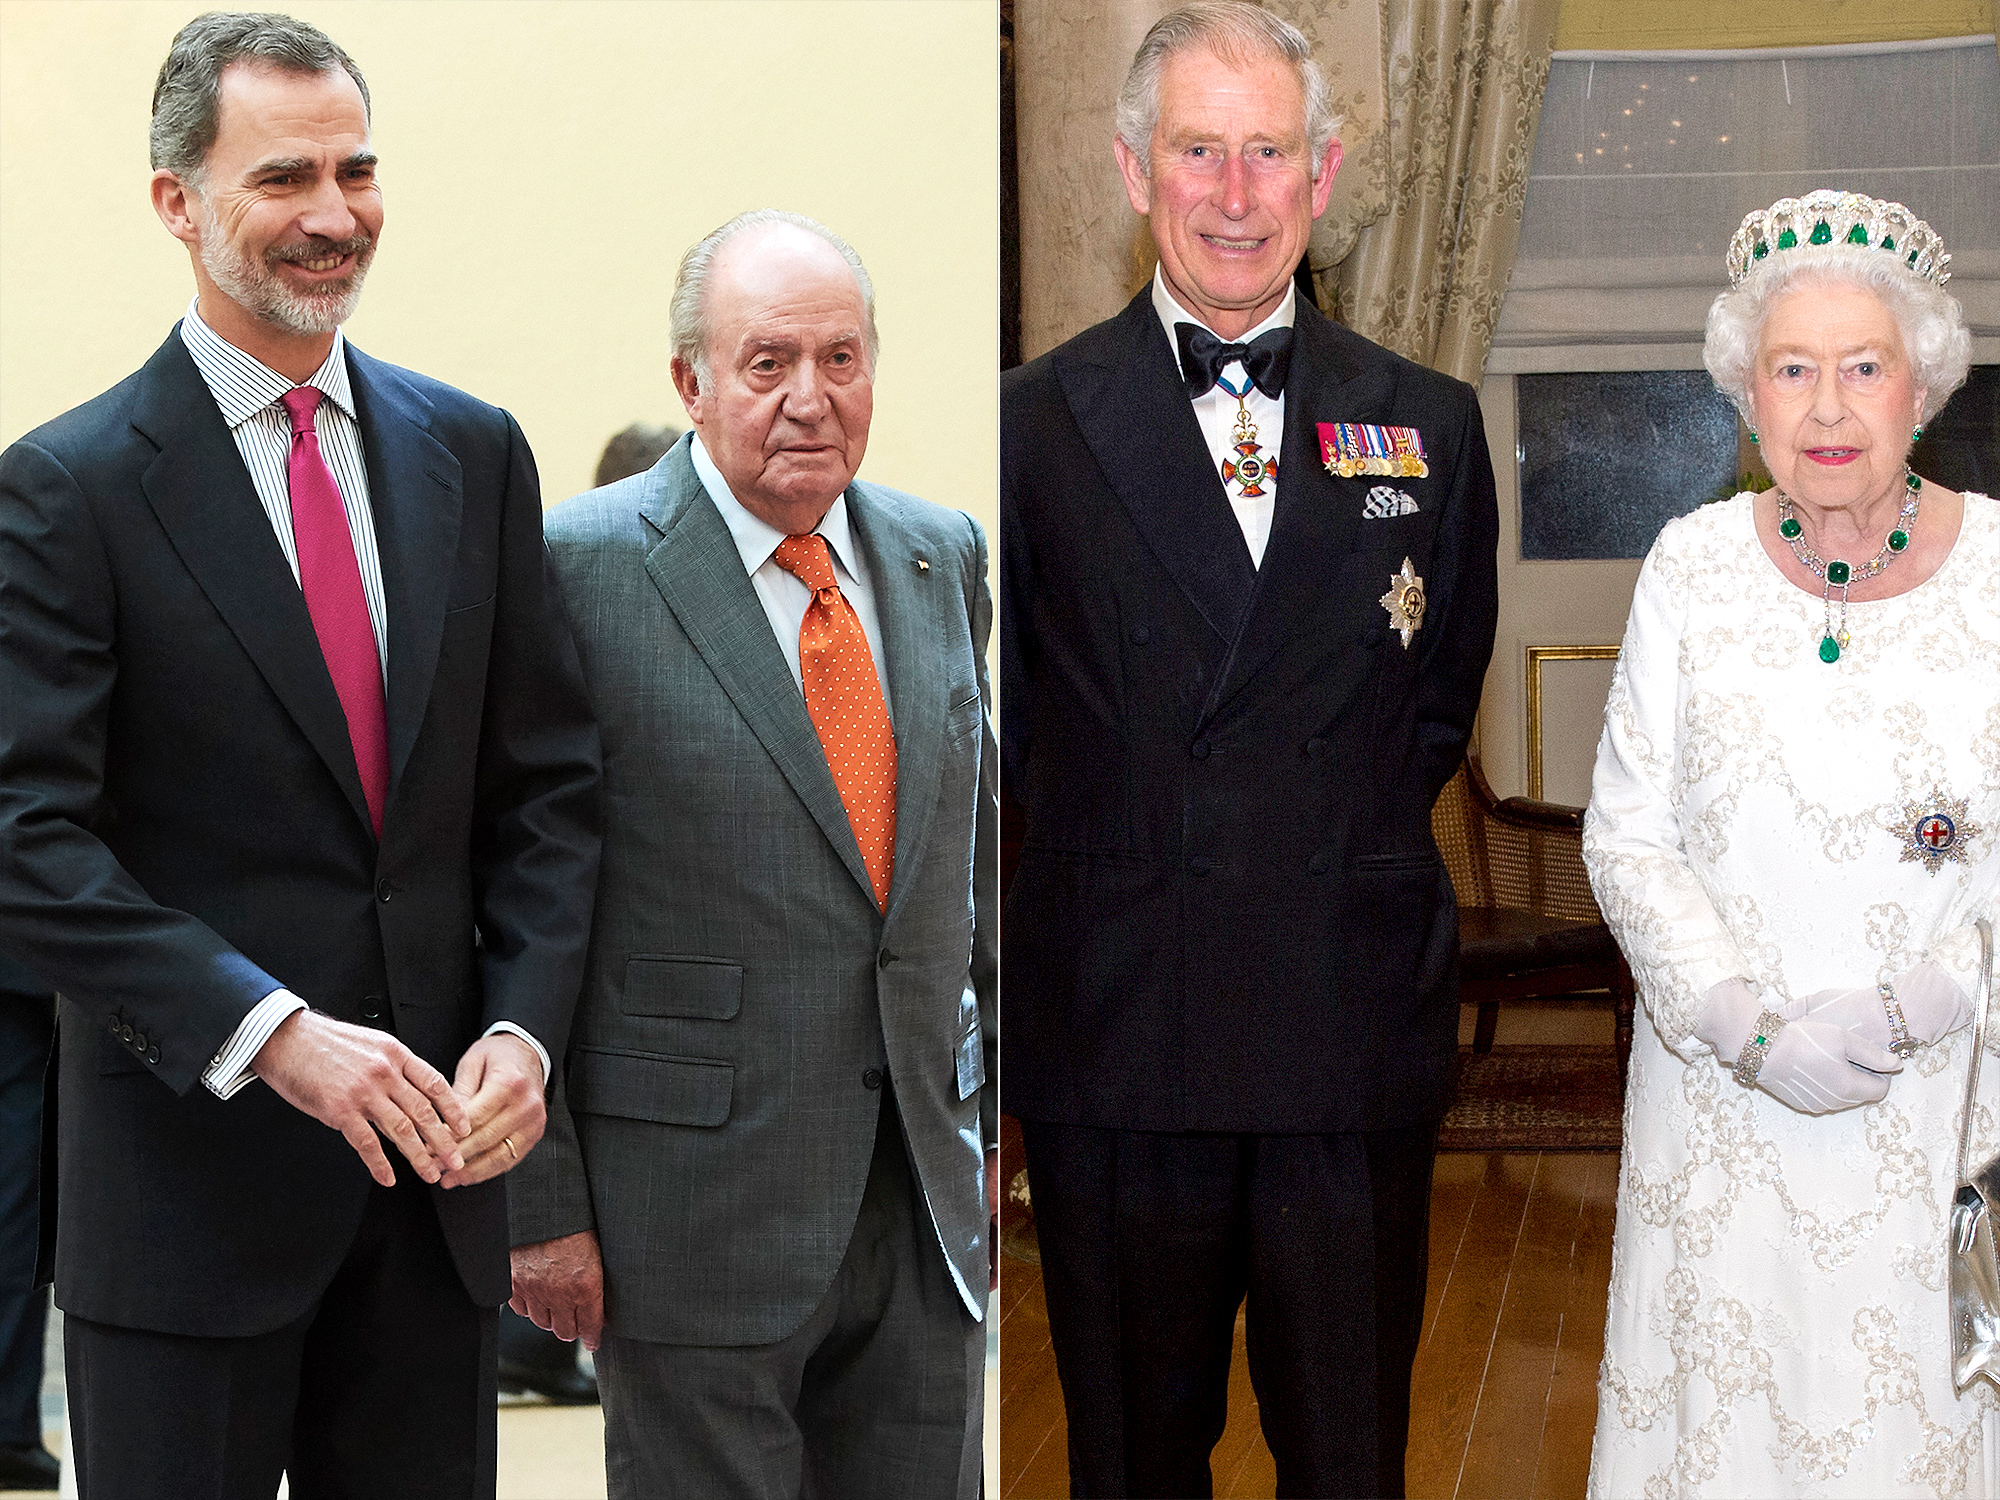 King Felipe VI of Spain and King Juan Carlos and Prince Charles, Prince of Wales, Queen Elizabeth II